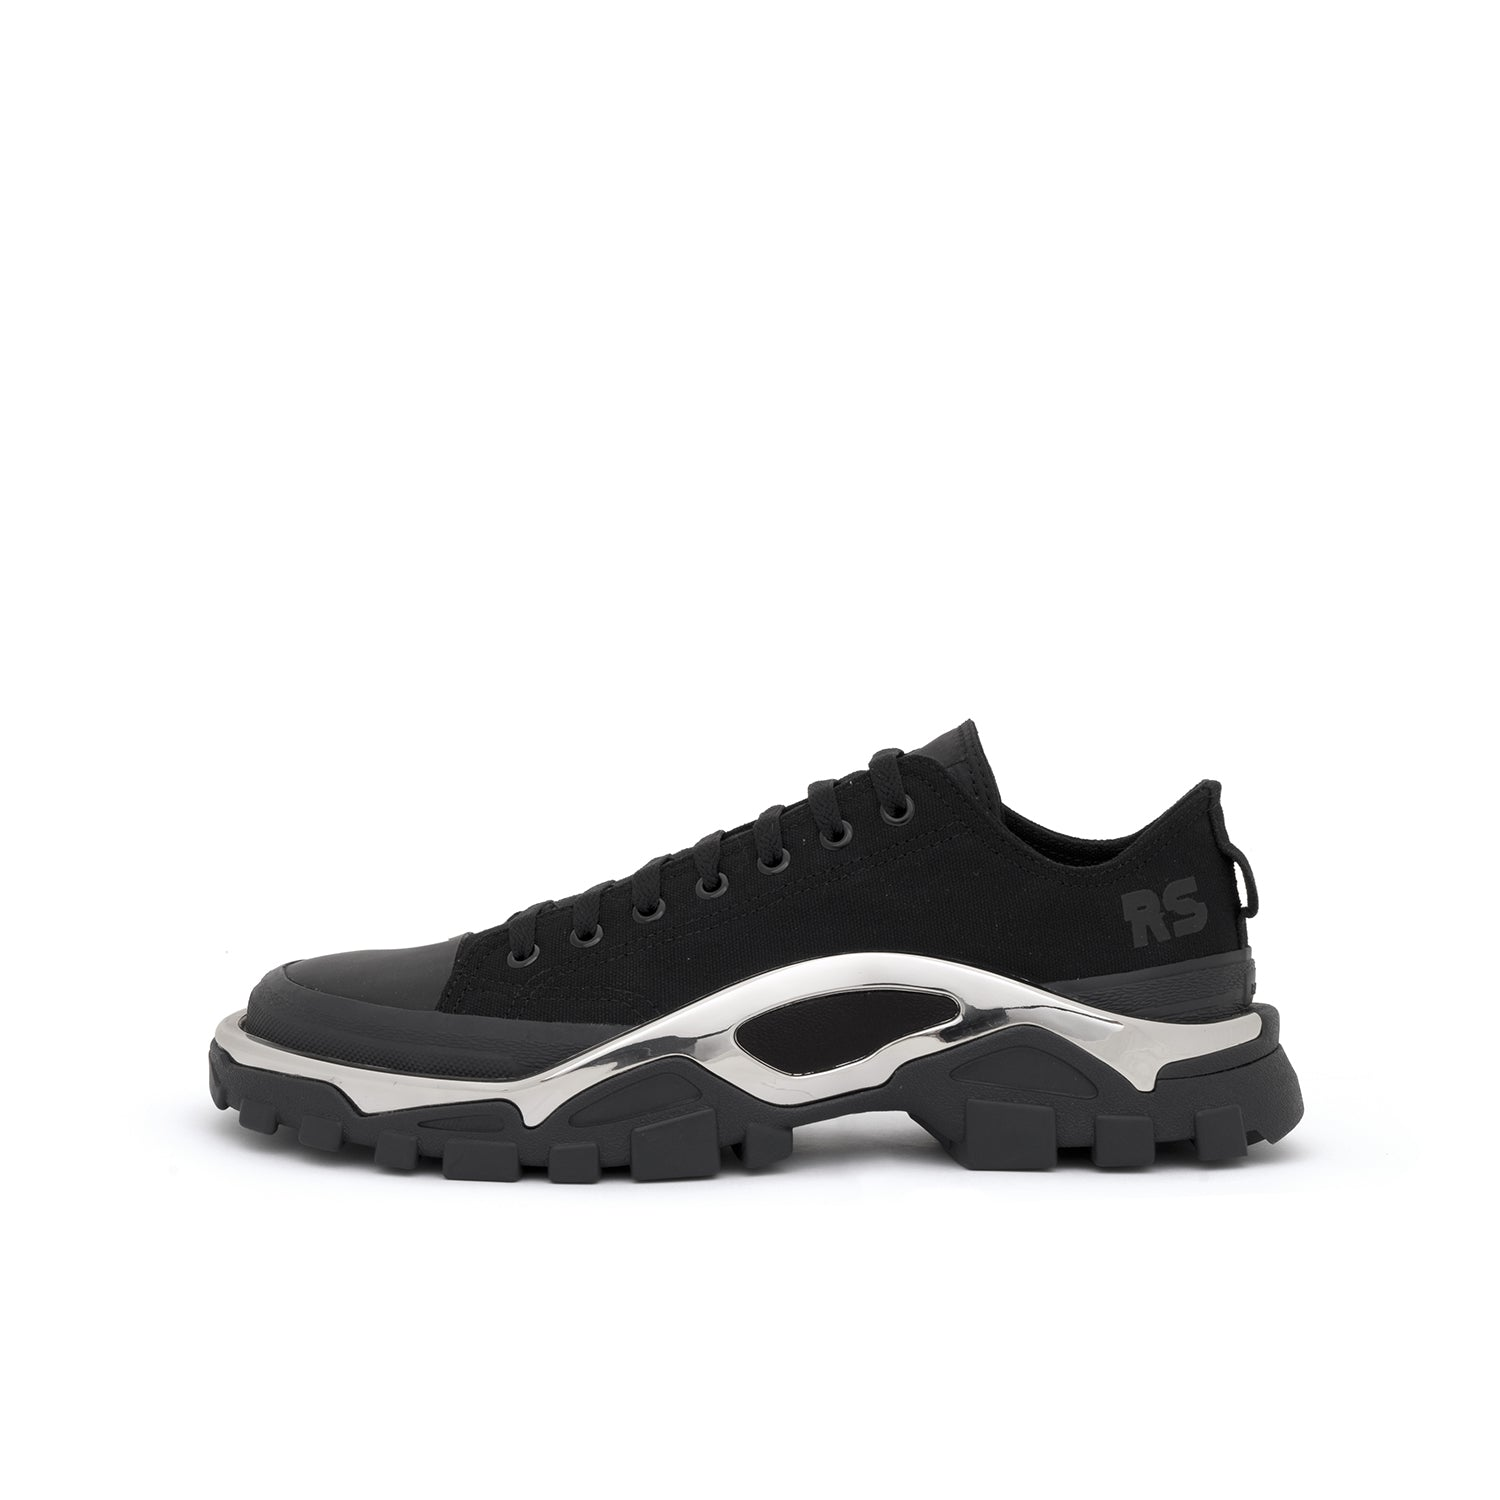 sports shoes 3c36f d69ae adidas x Raf Simons RS Detroit Runner Black  Black – Concret